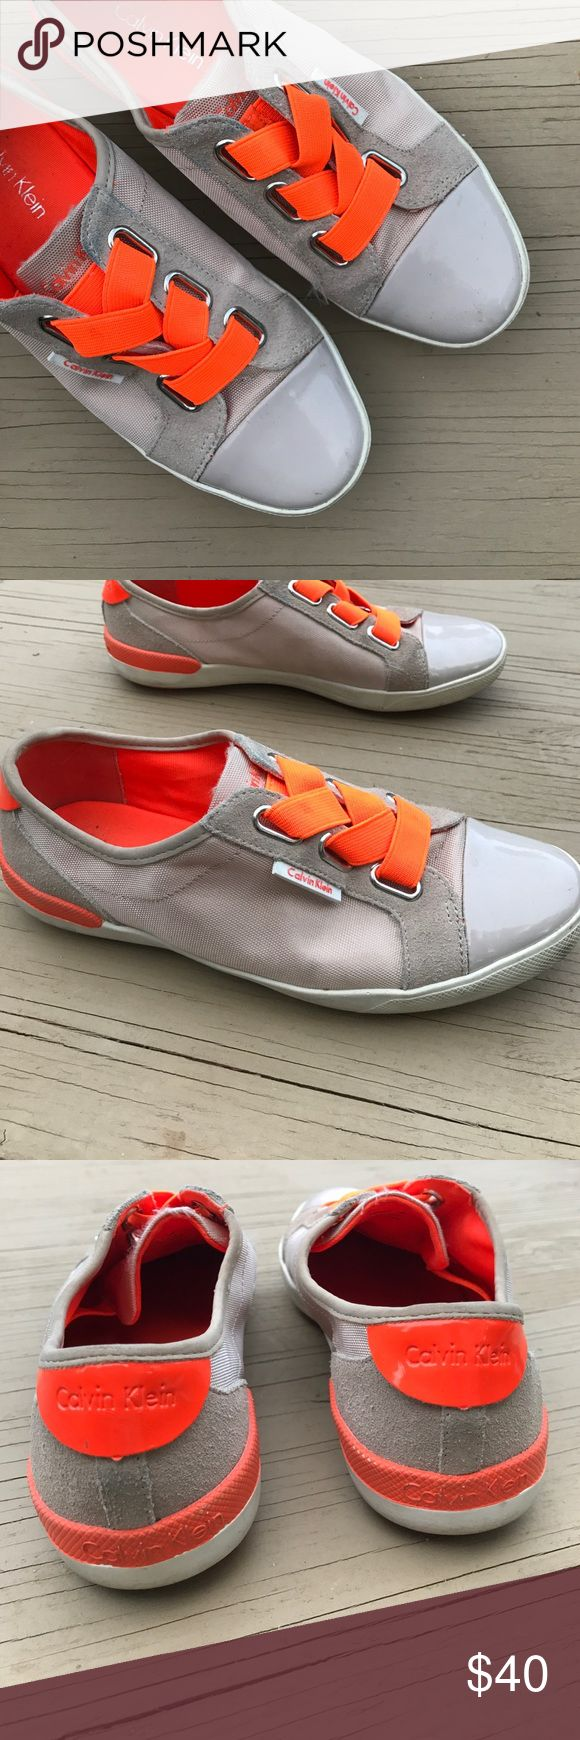 Calvin Klein Trinah sneakers Elastic band very comfortable. Needs some cleaning but in great condition Calvin Klein Shoes Sneakers